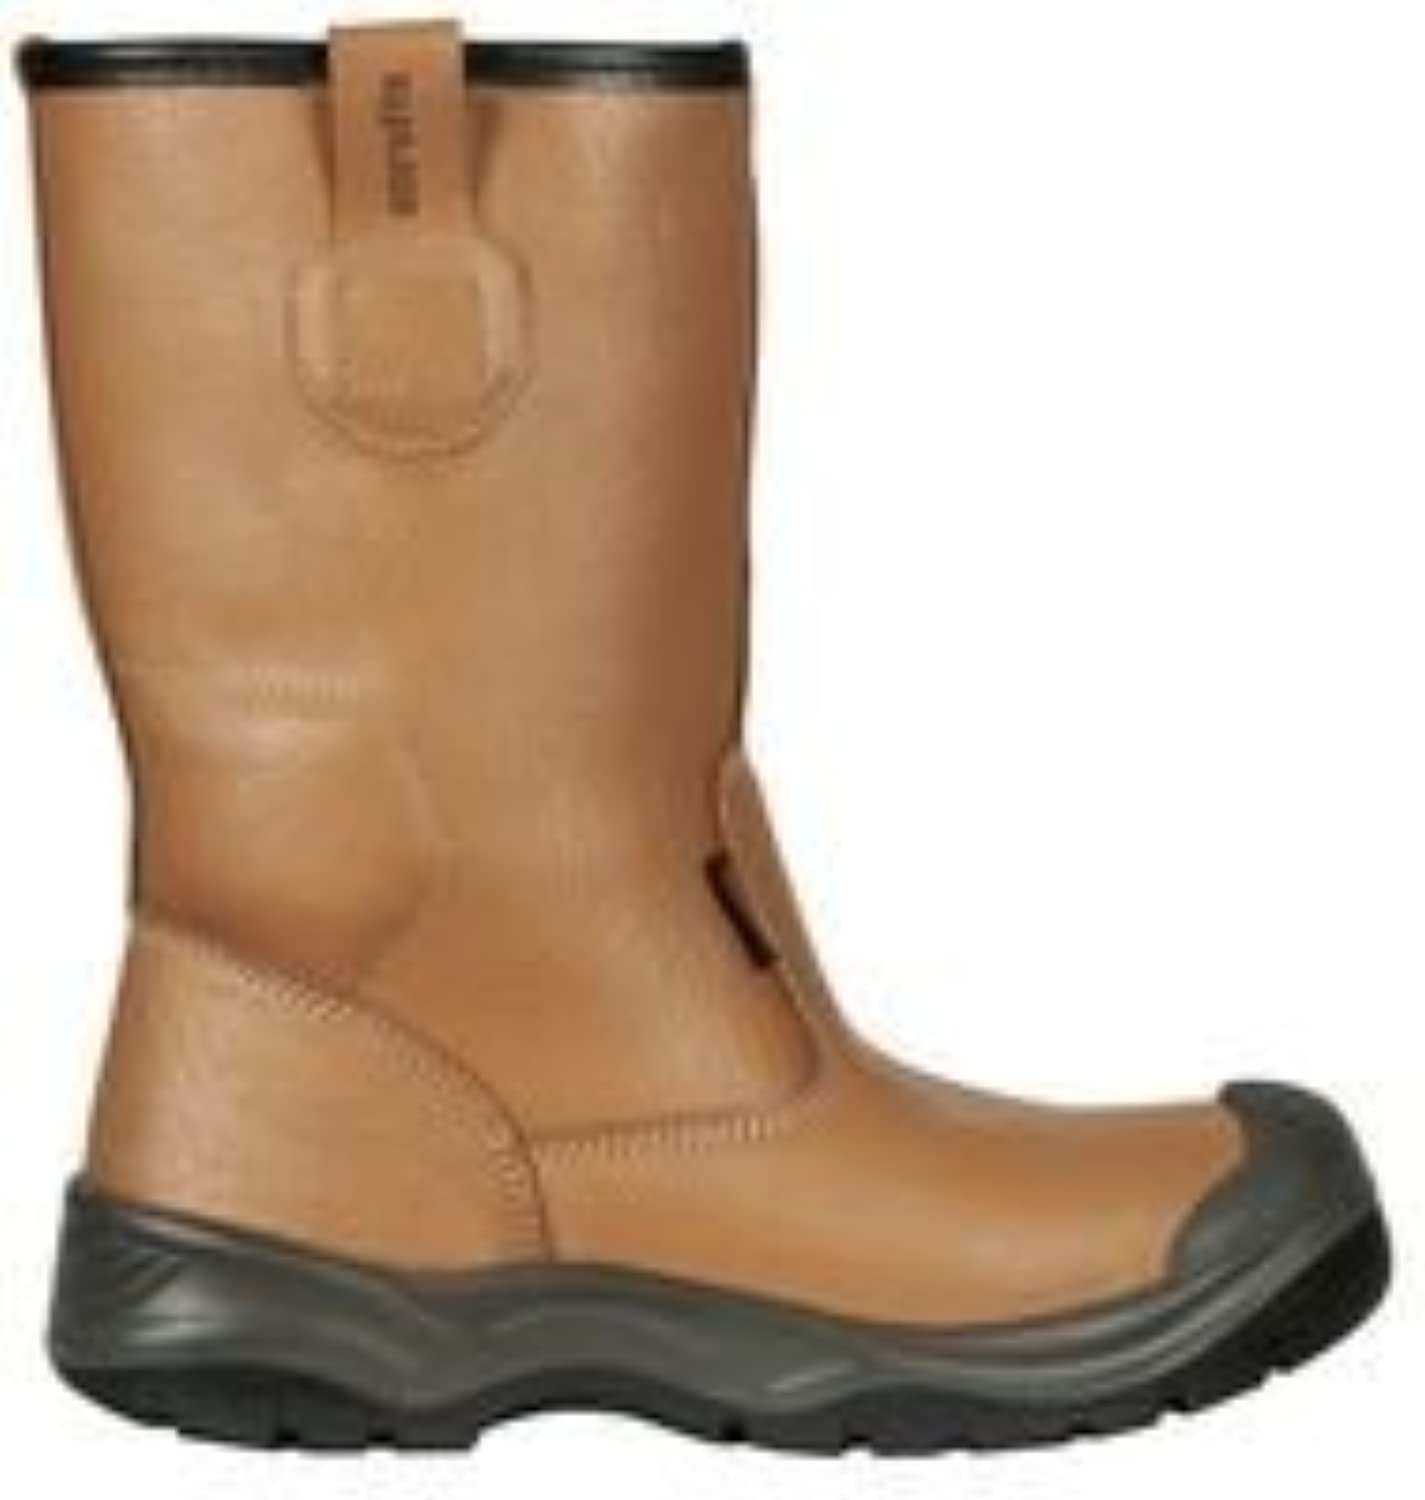 GRAVITY SAFETY RIGGER ,12, TAN BPSCA T50915 - HE32501 By SCRUFFS